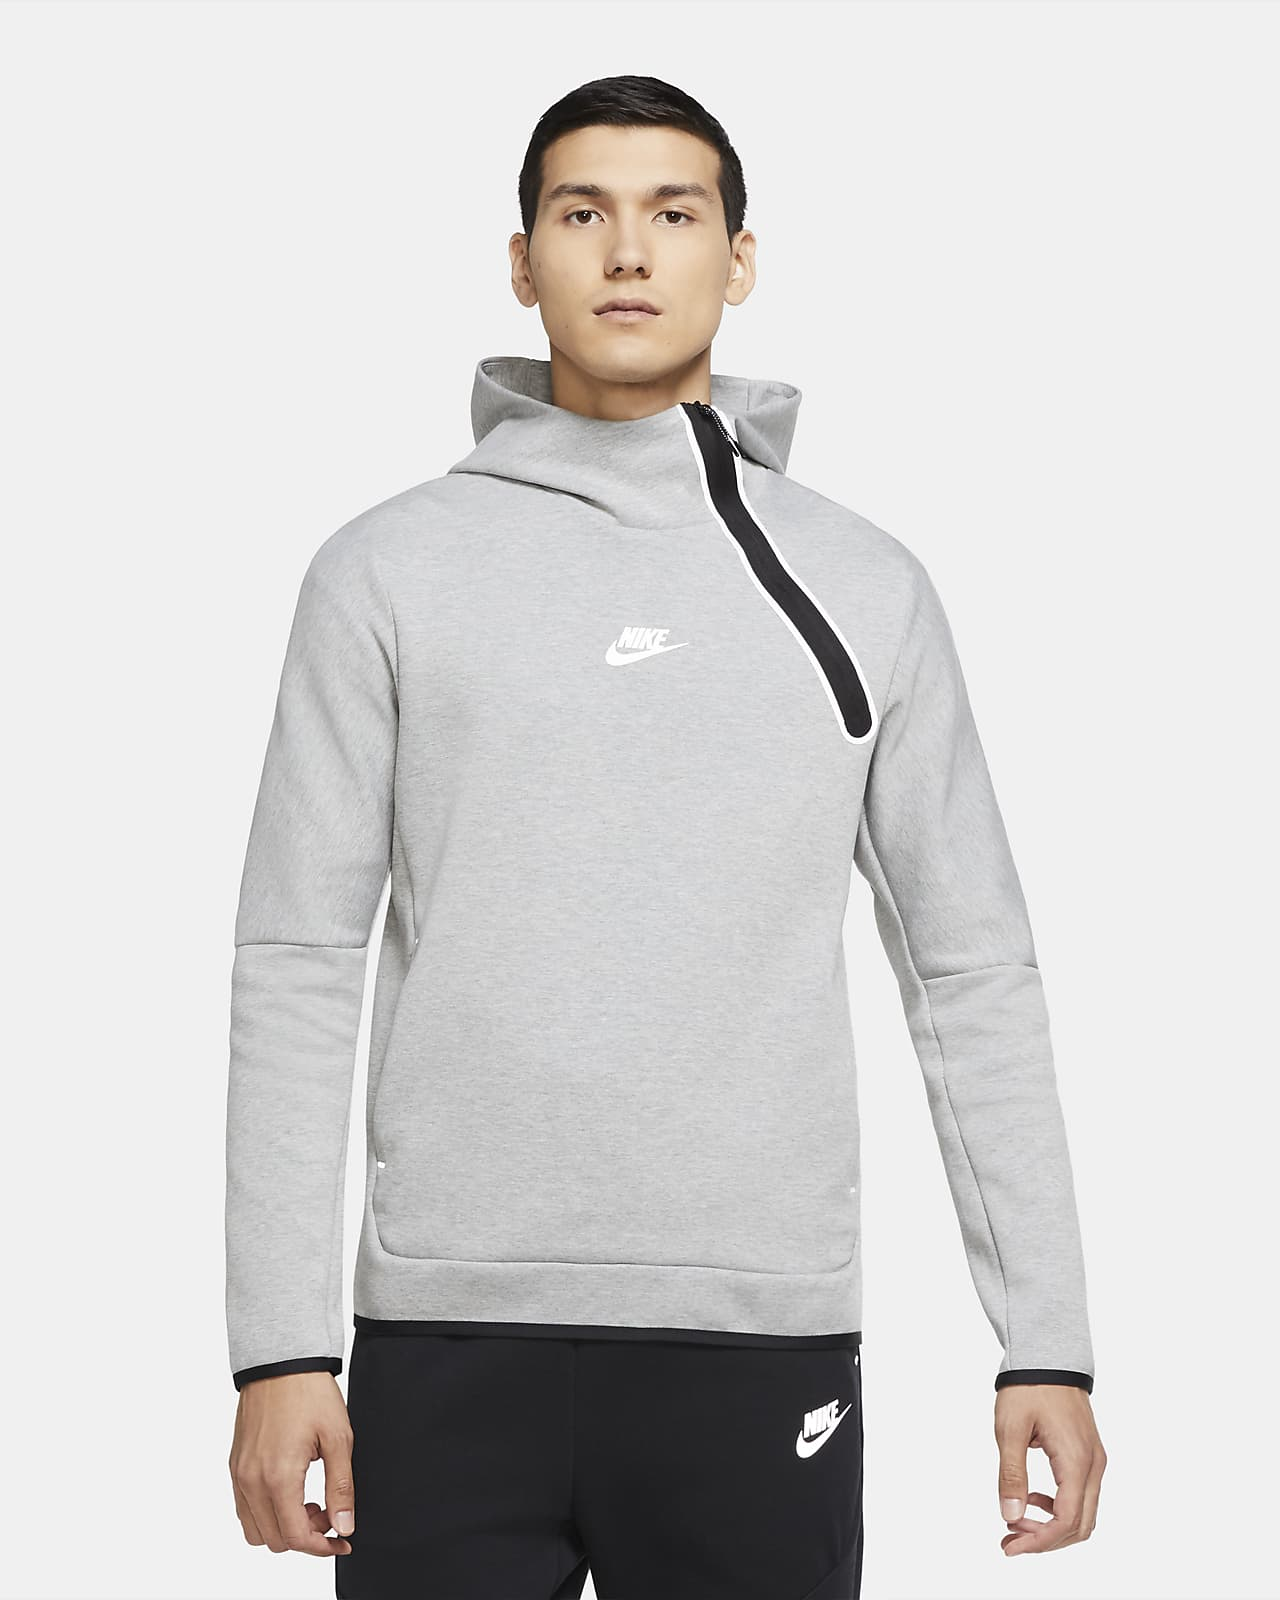 Sweat à capuche Nike Sportswear Tech Fleece pour Homme